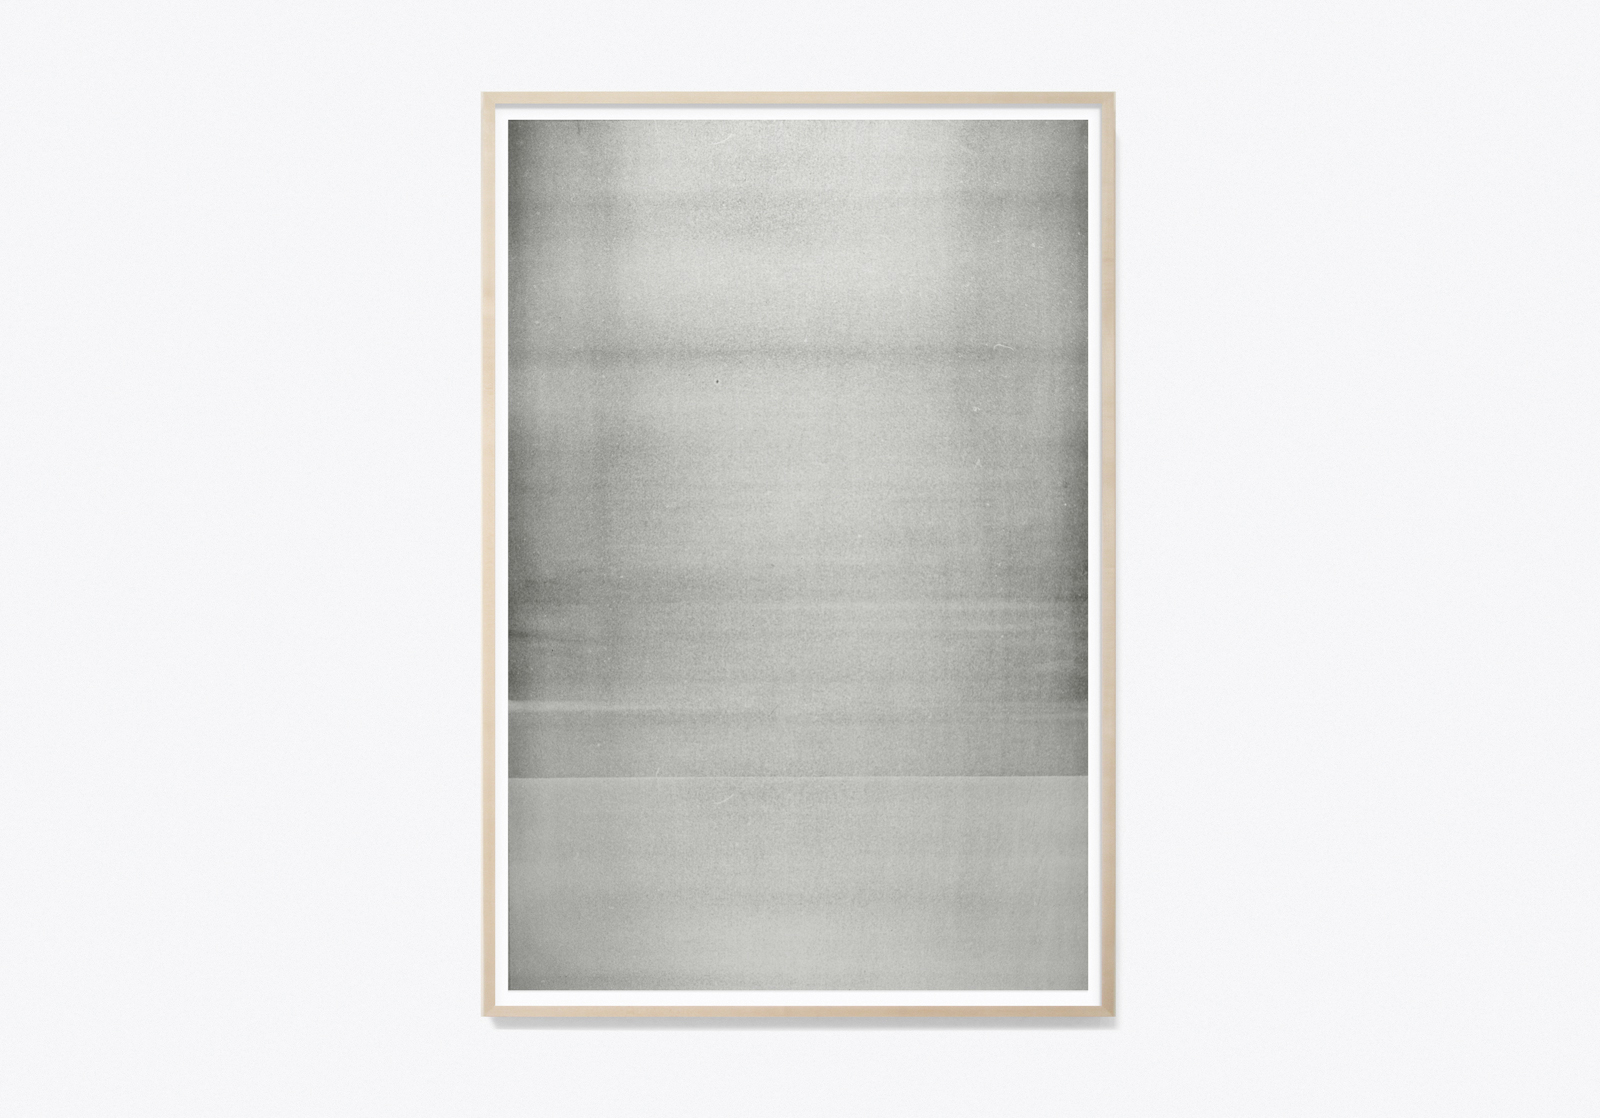 """Jim Verburg,  Untitled (Reflected/Repeated) #5 , 2014, oil based ink painted on newsprint, 36"""" x 24"""" (91 x 61 cm)"""